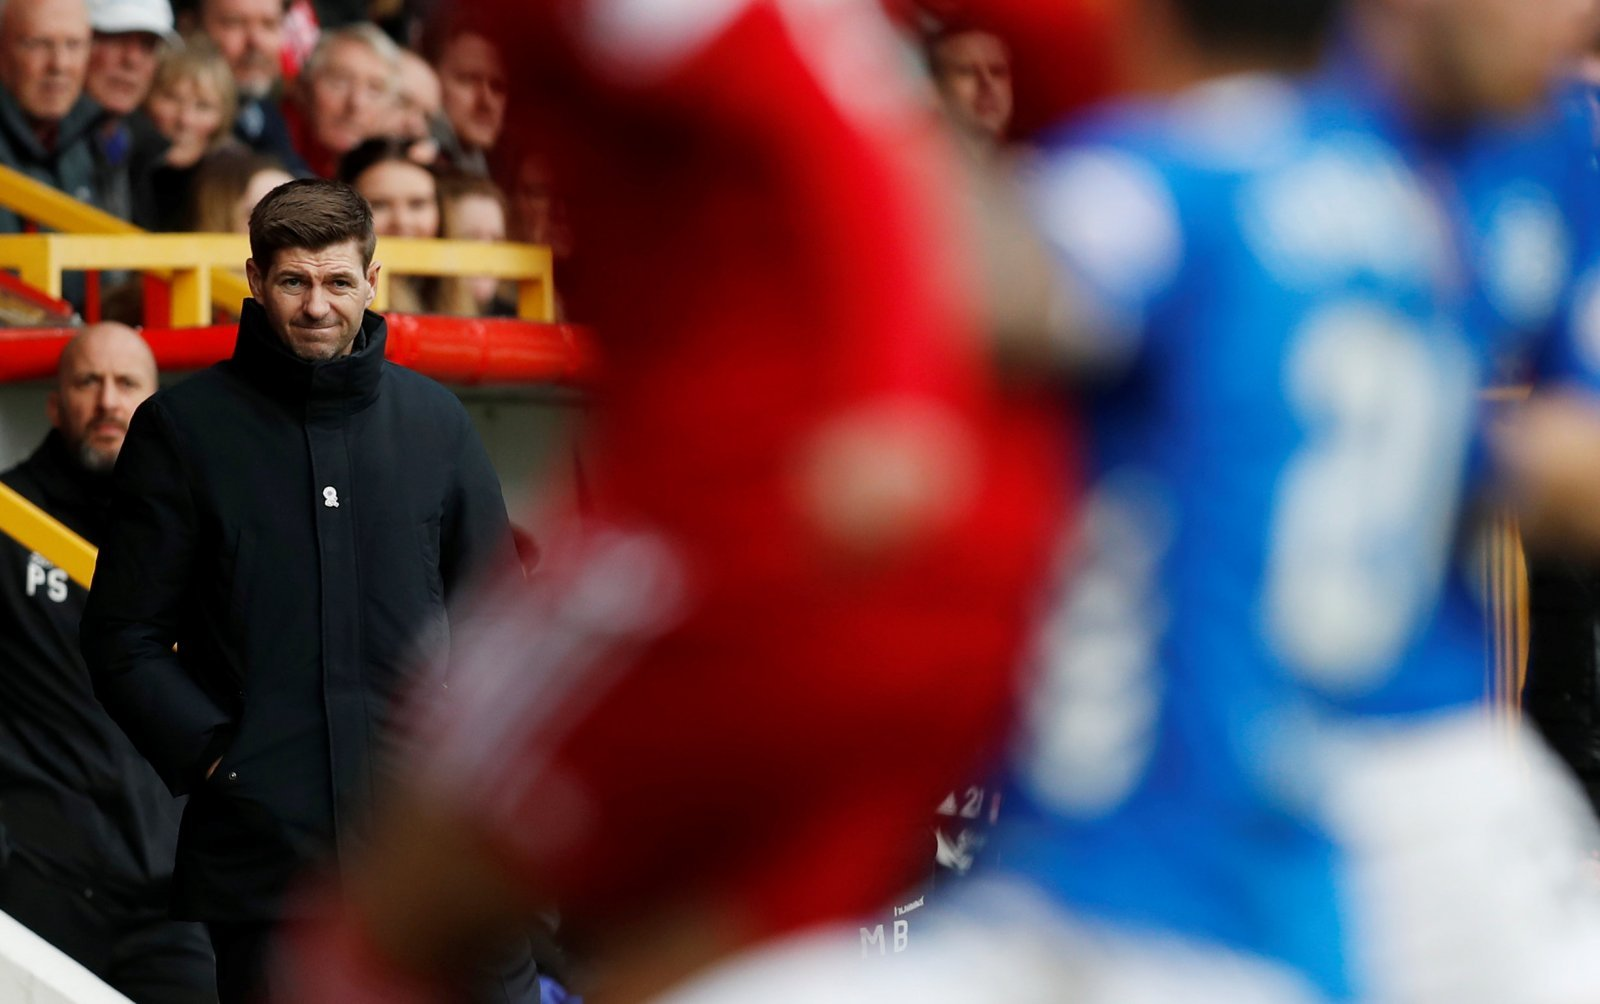 Rangers: There are two games left that could turn the season even more sour